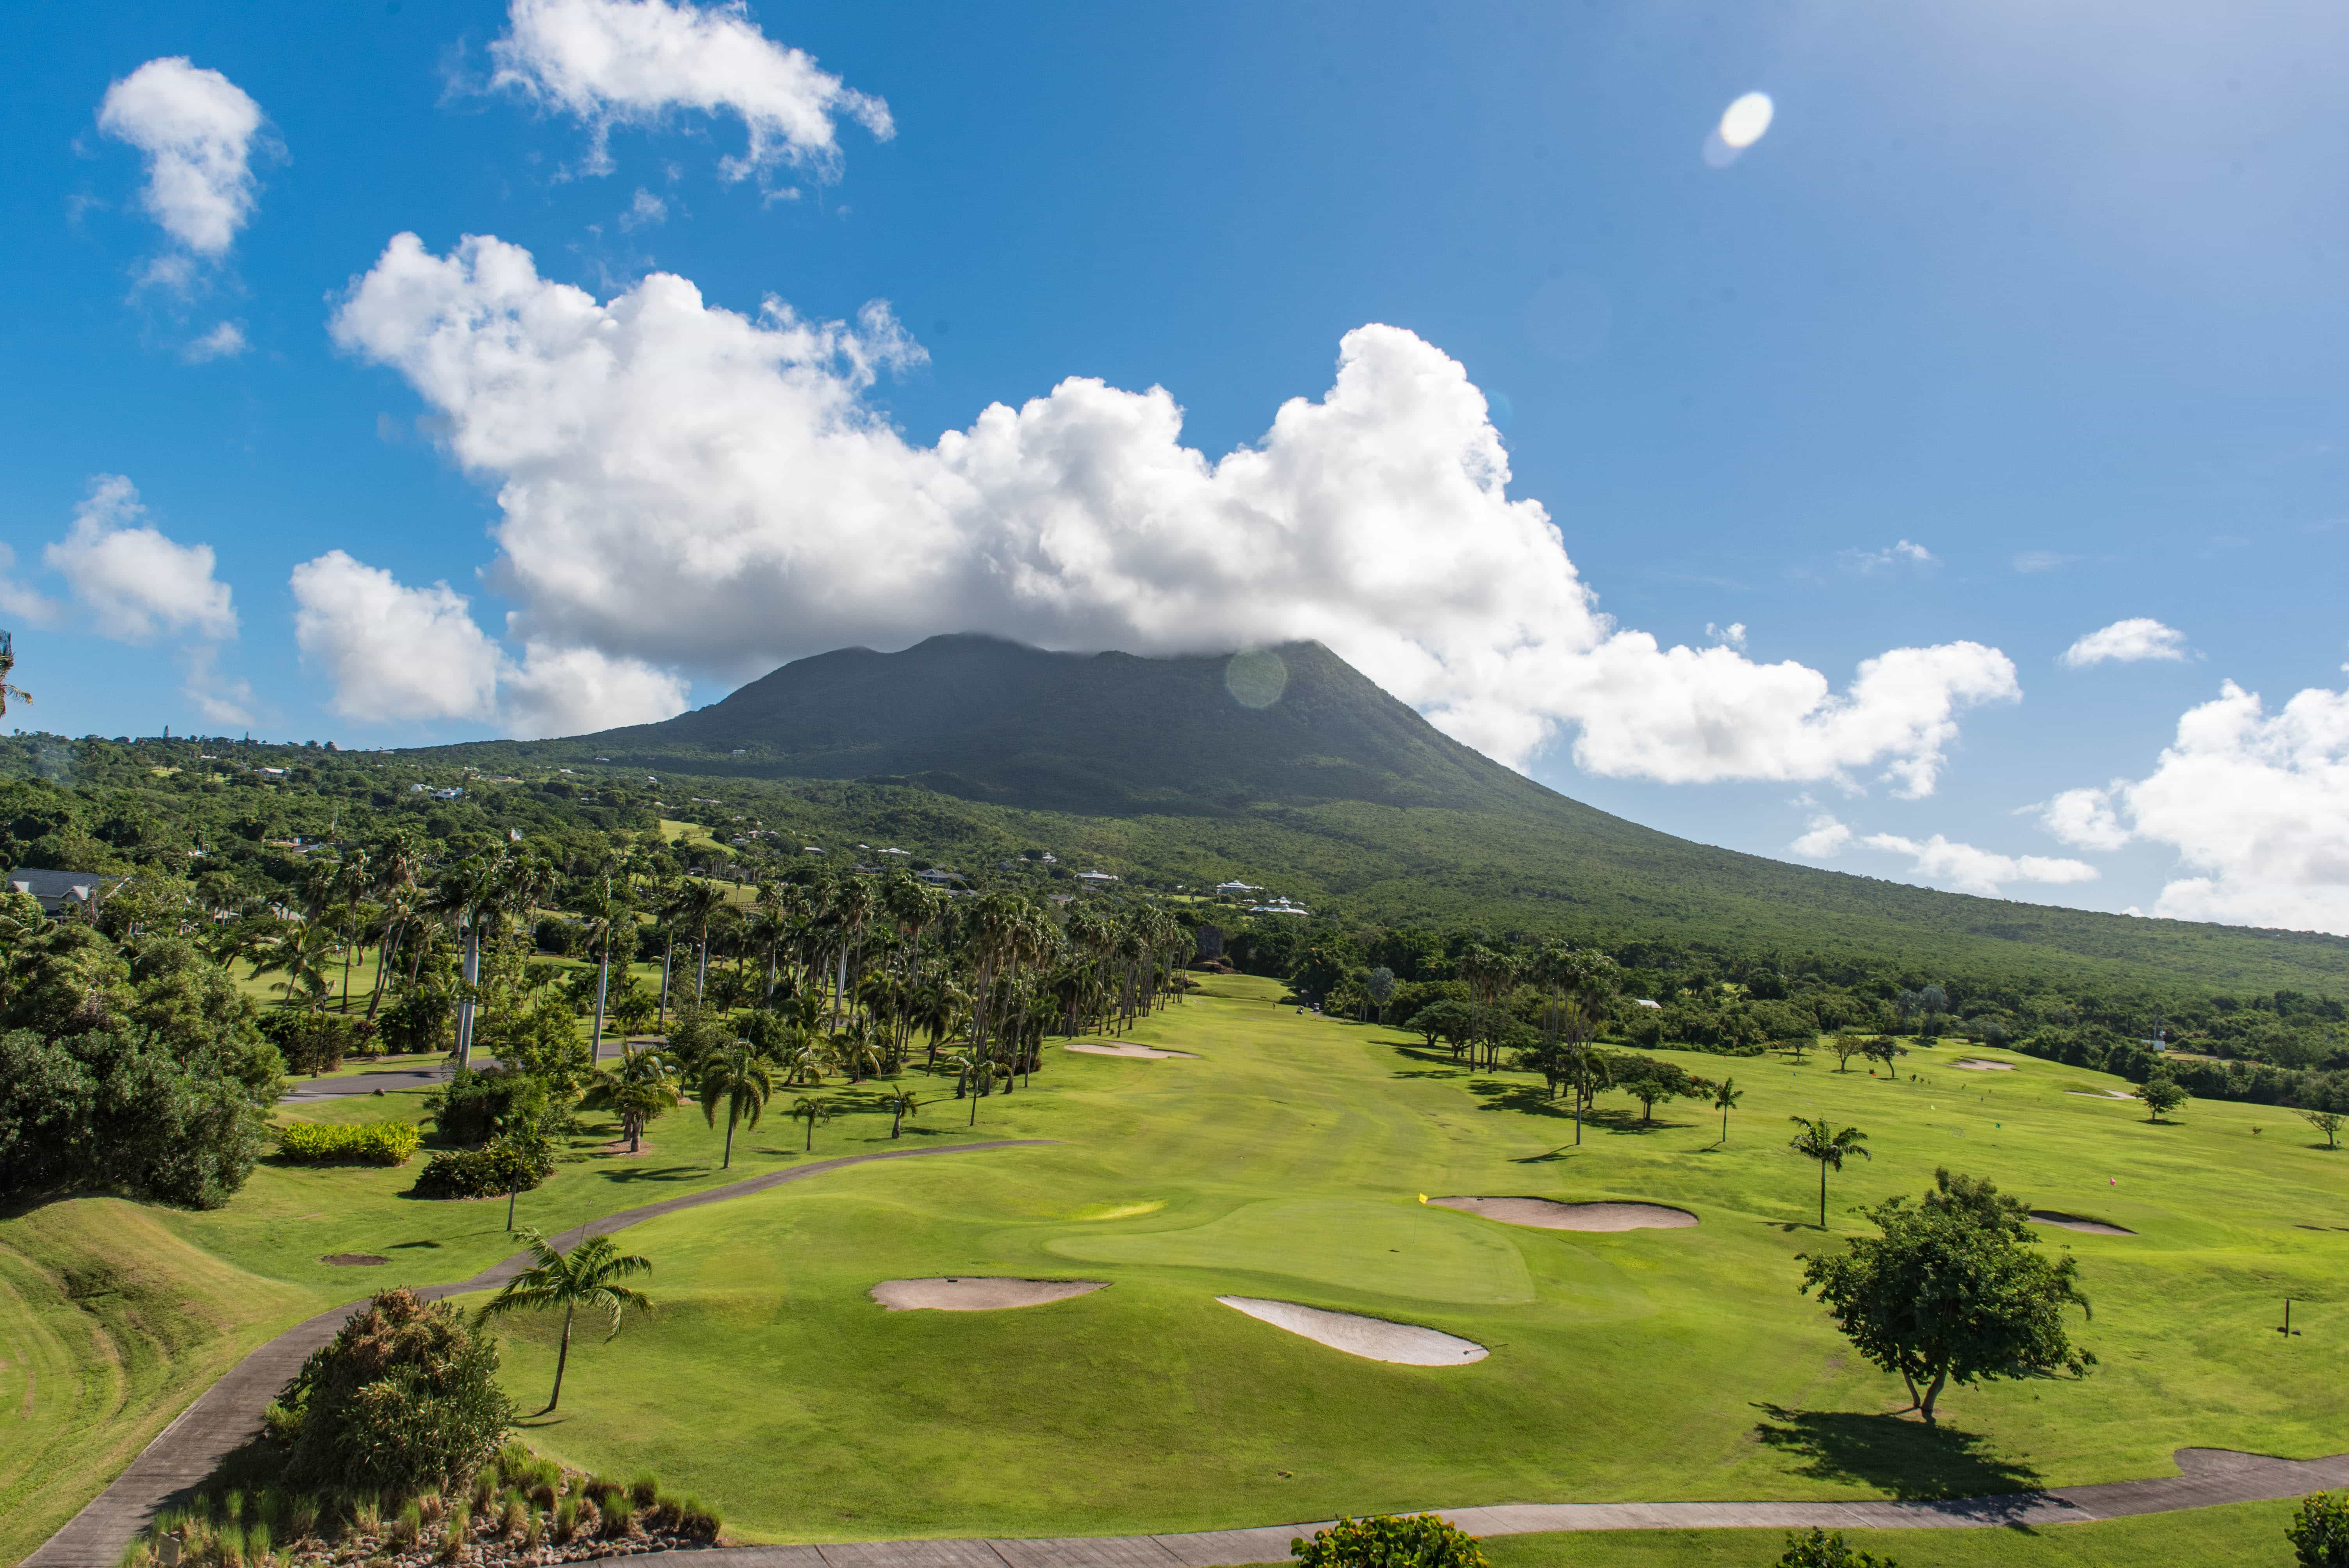 If golf is your thing, how about playing in the shadow of this volcano?